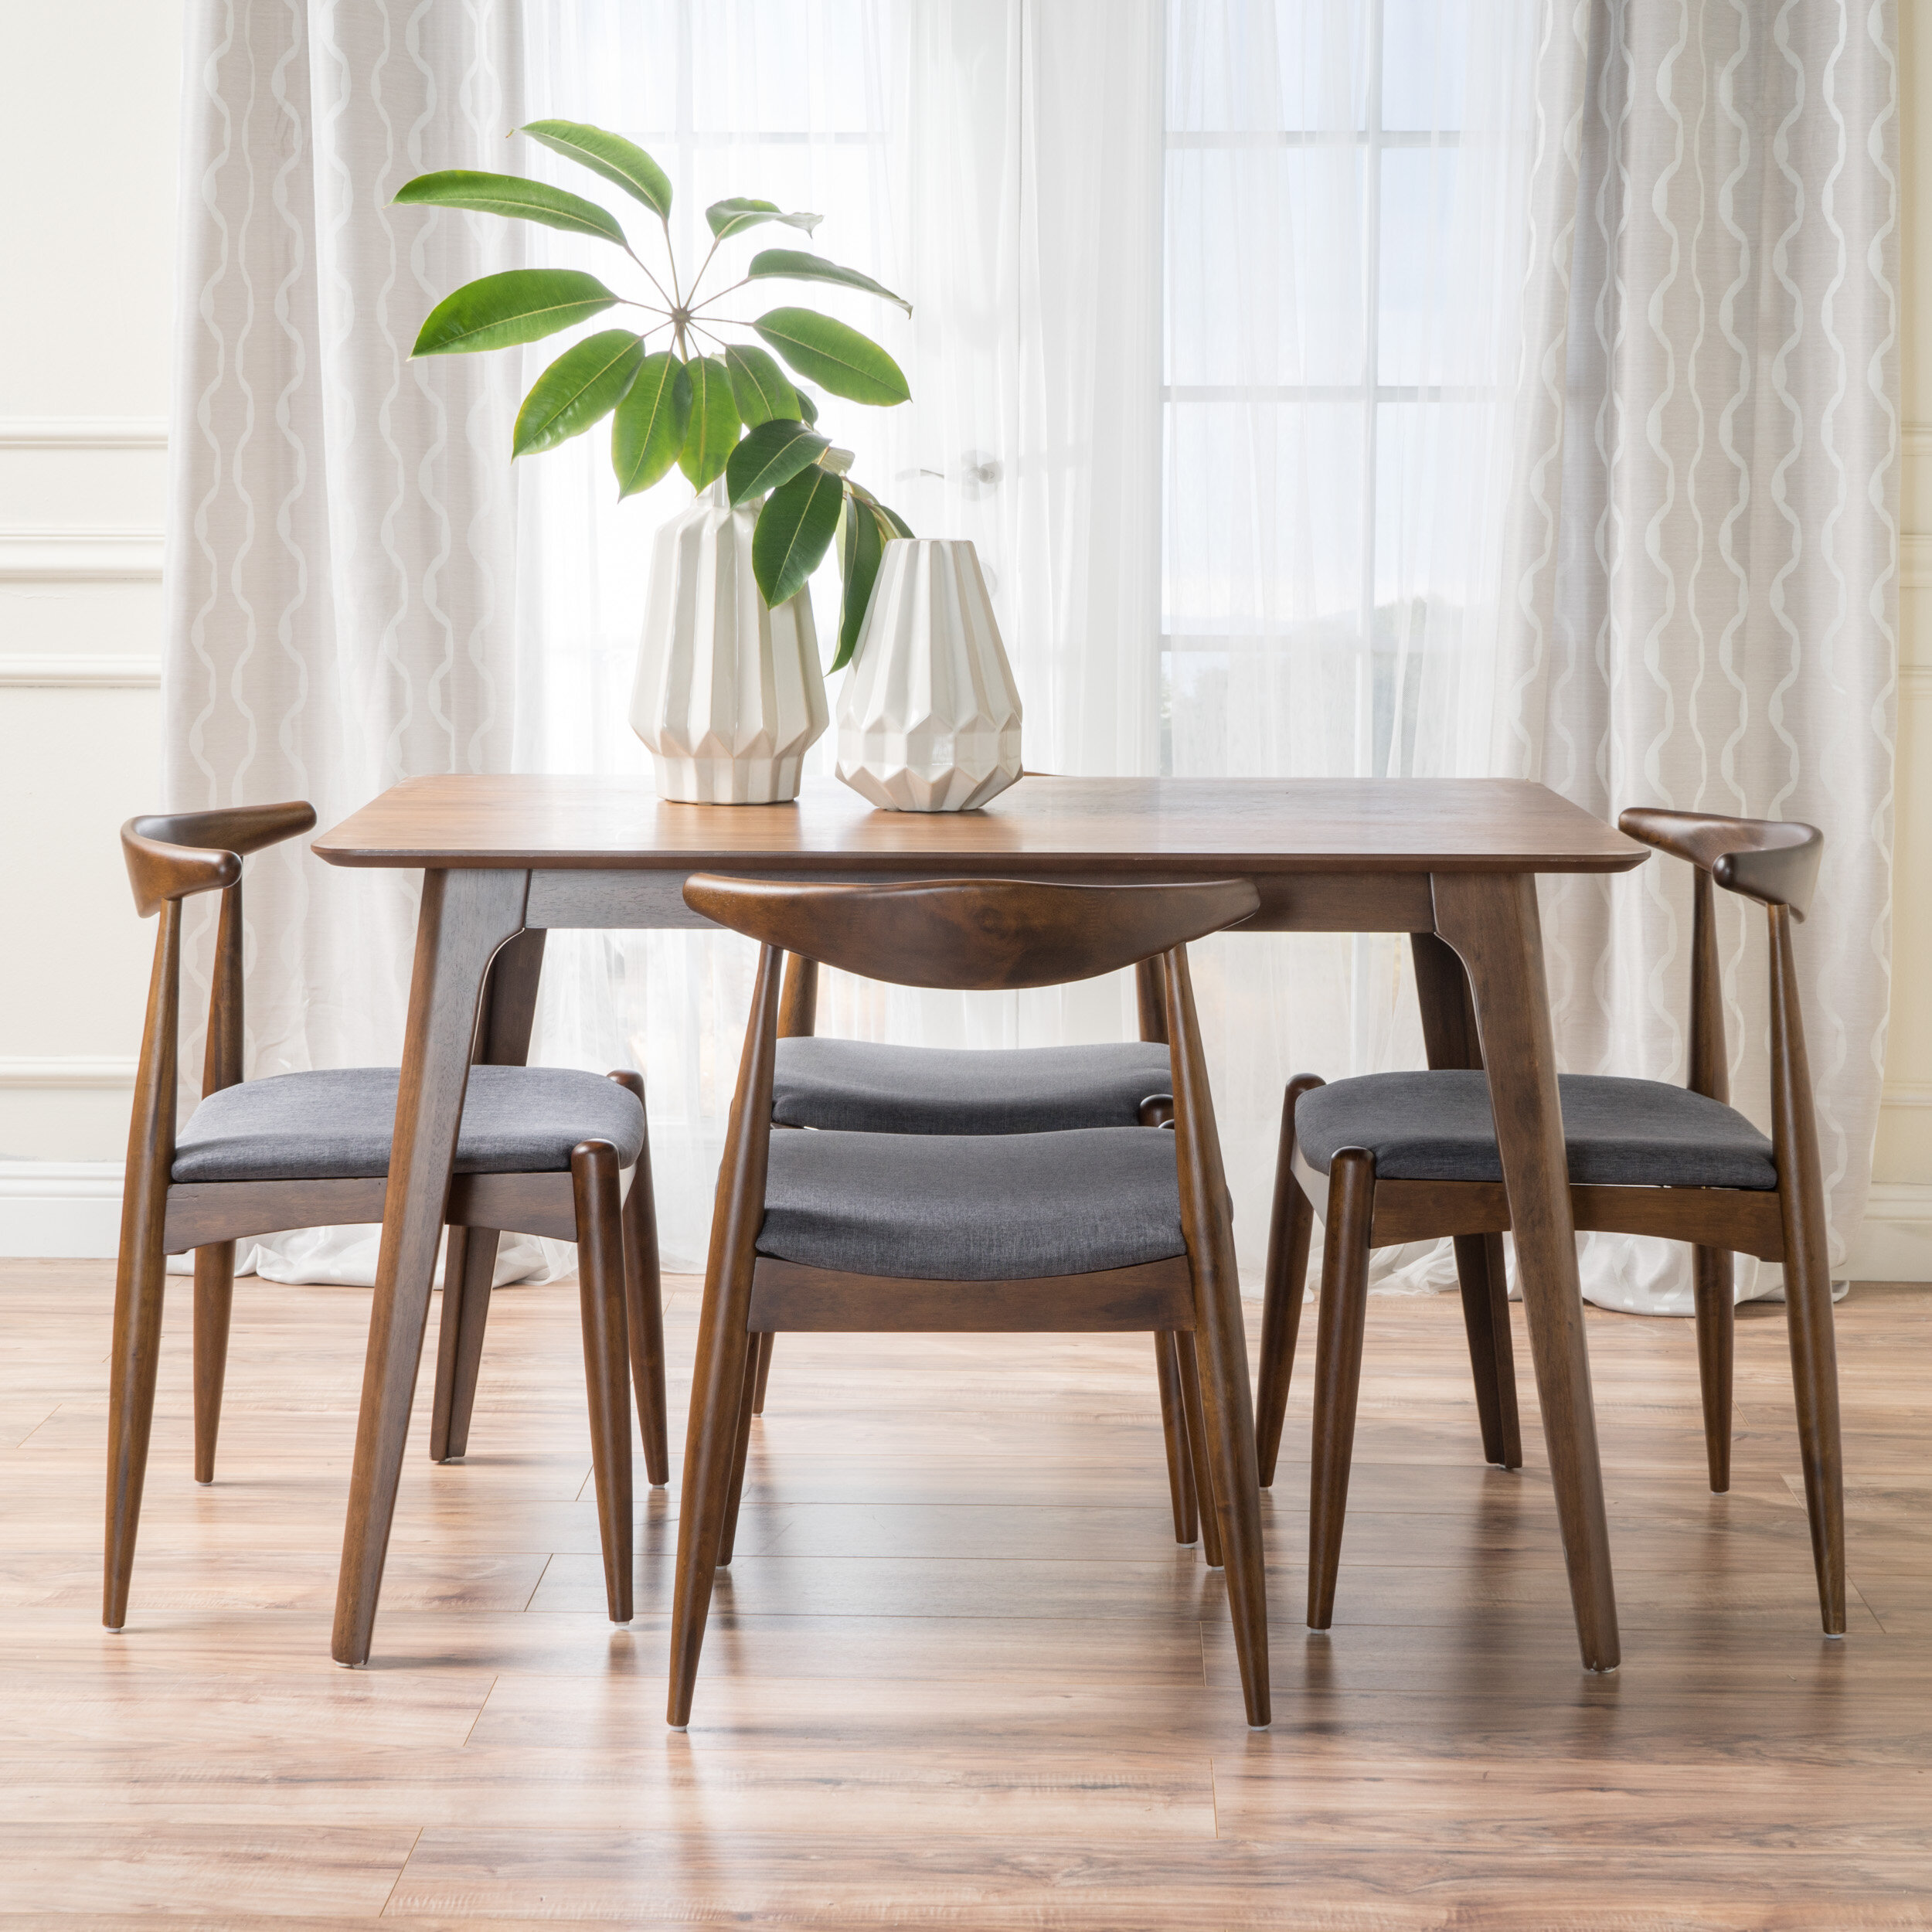 Langley Street Millie 5 Piece Mid Century Dining Set | Wayfair